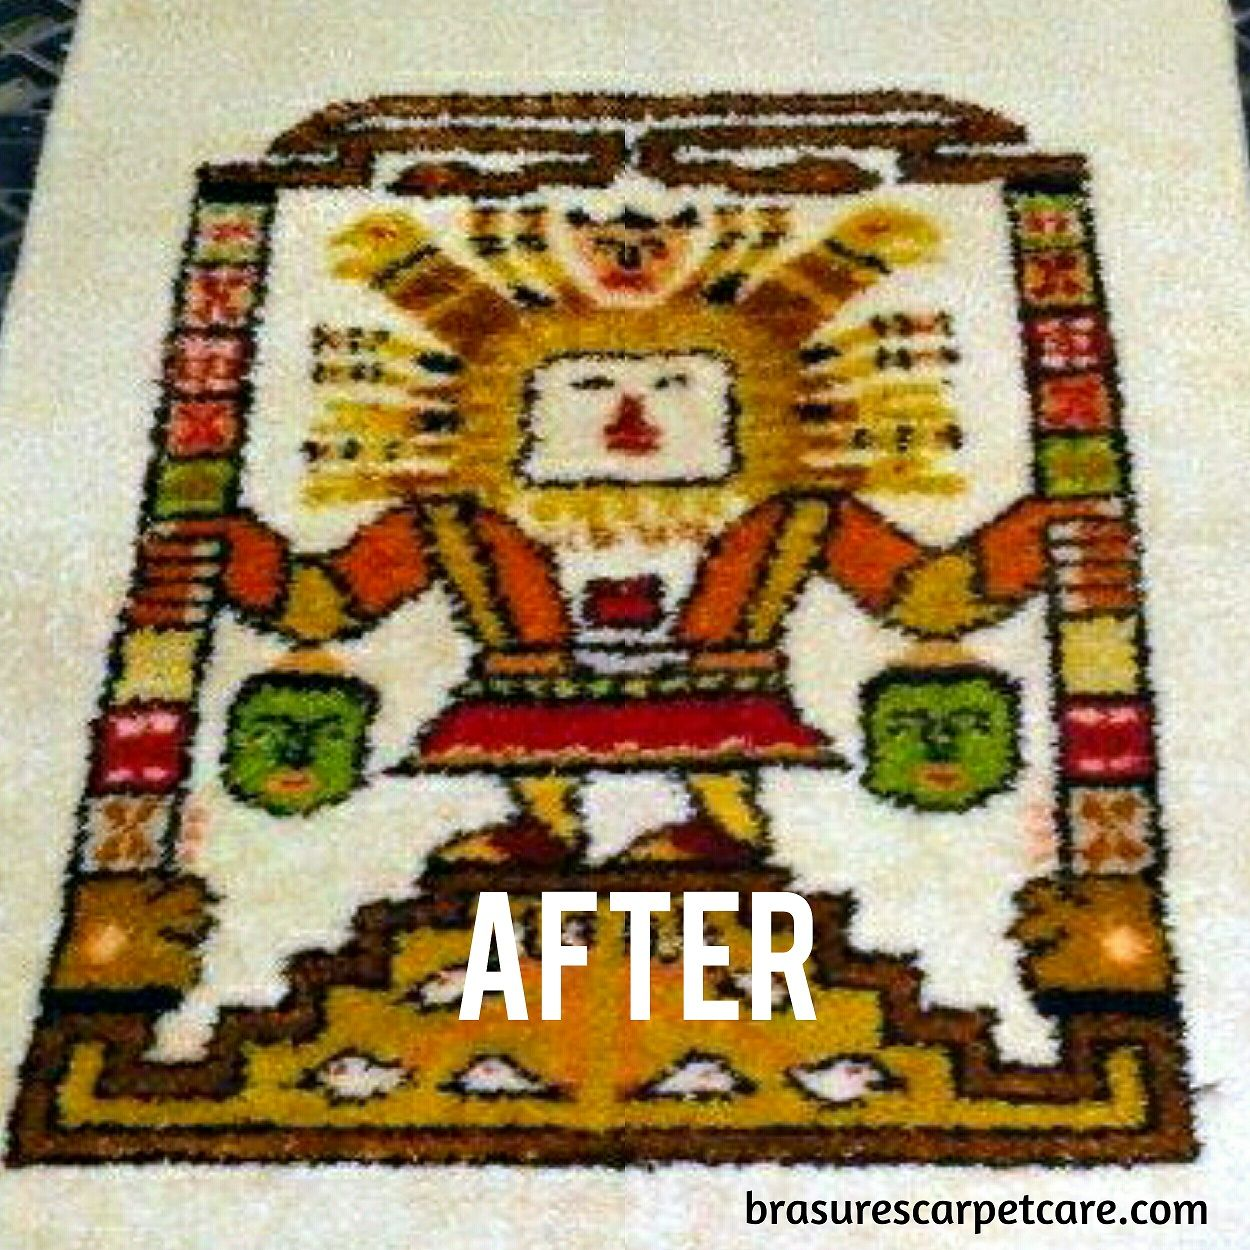 And this is after we have cleaned and removed the color damage. We handle all kinds of Oriental and specialty rugs here at our plant in Sussex County, Delaware.   #brasurescarpetcare #orientalrugcleaning